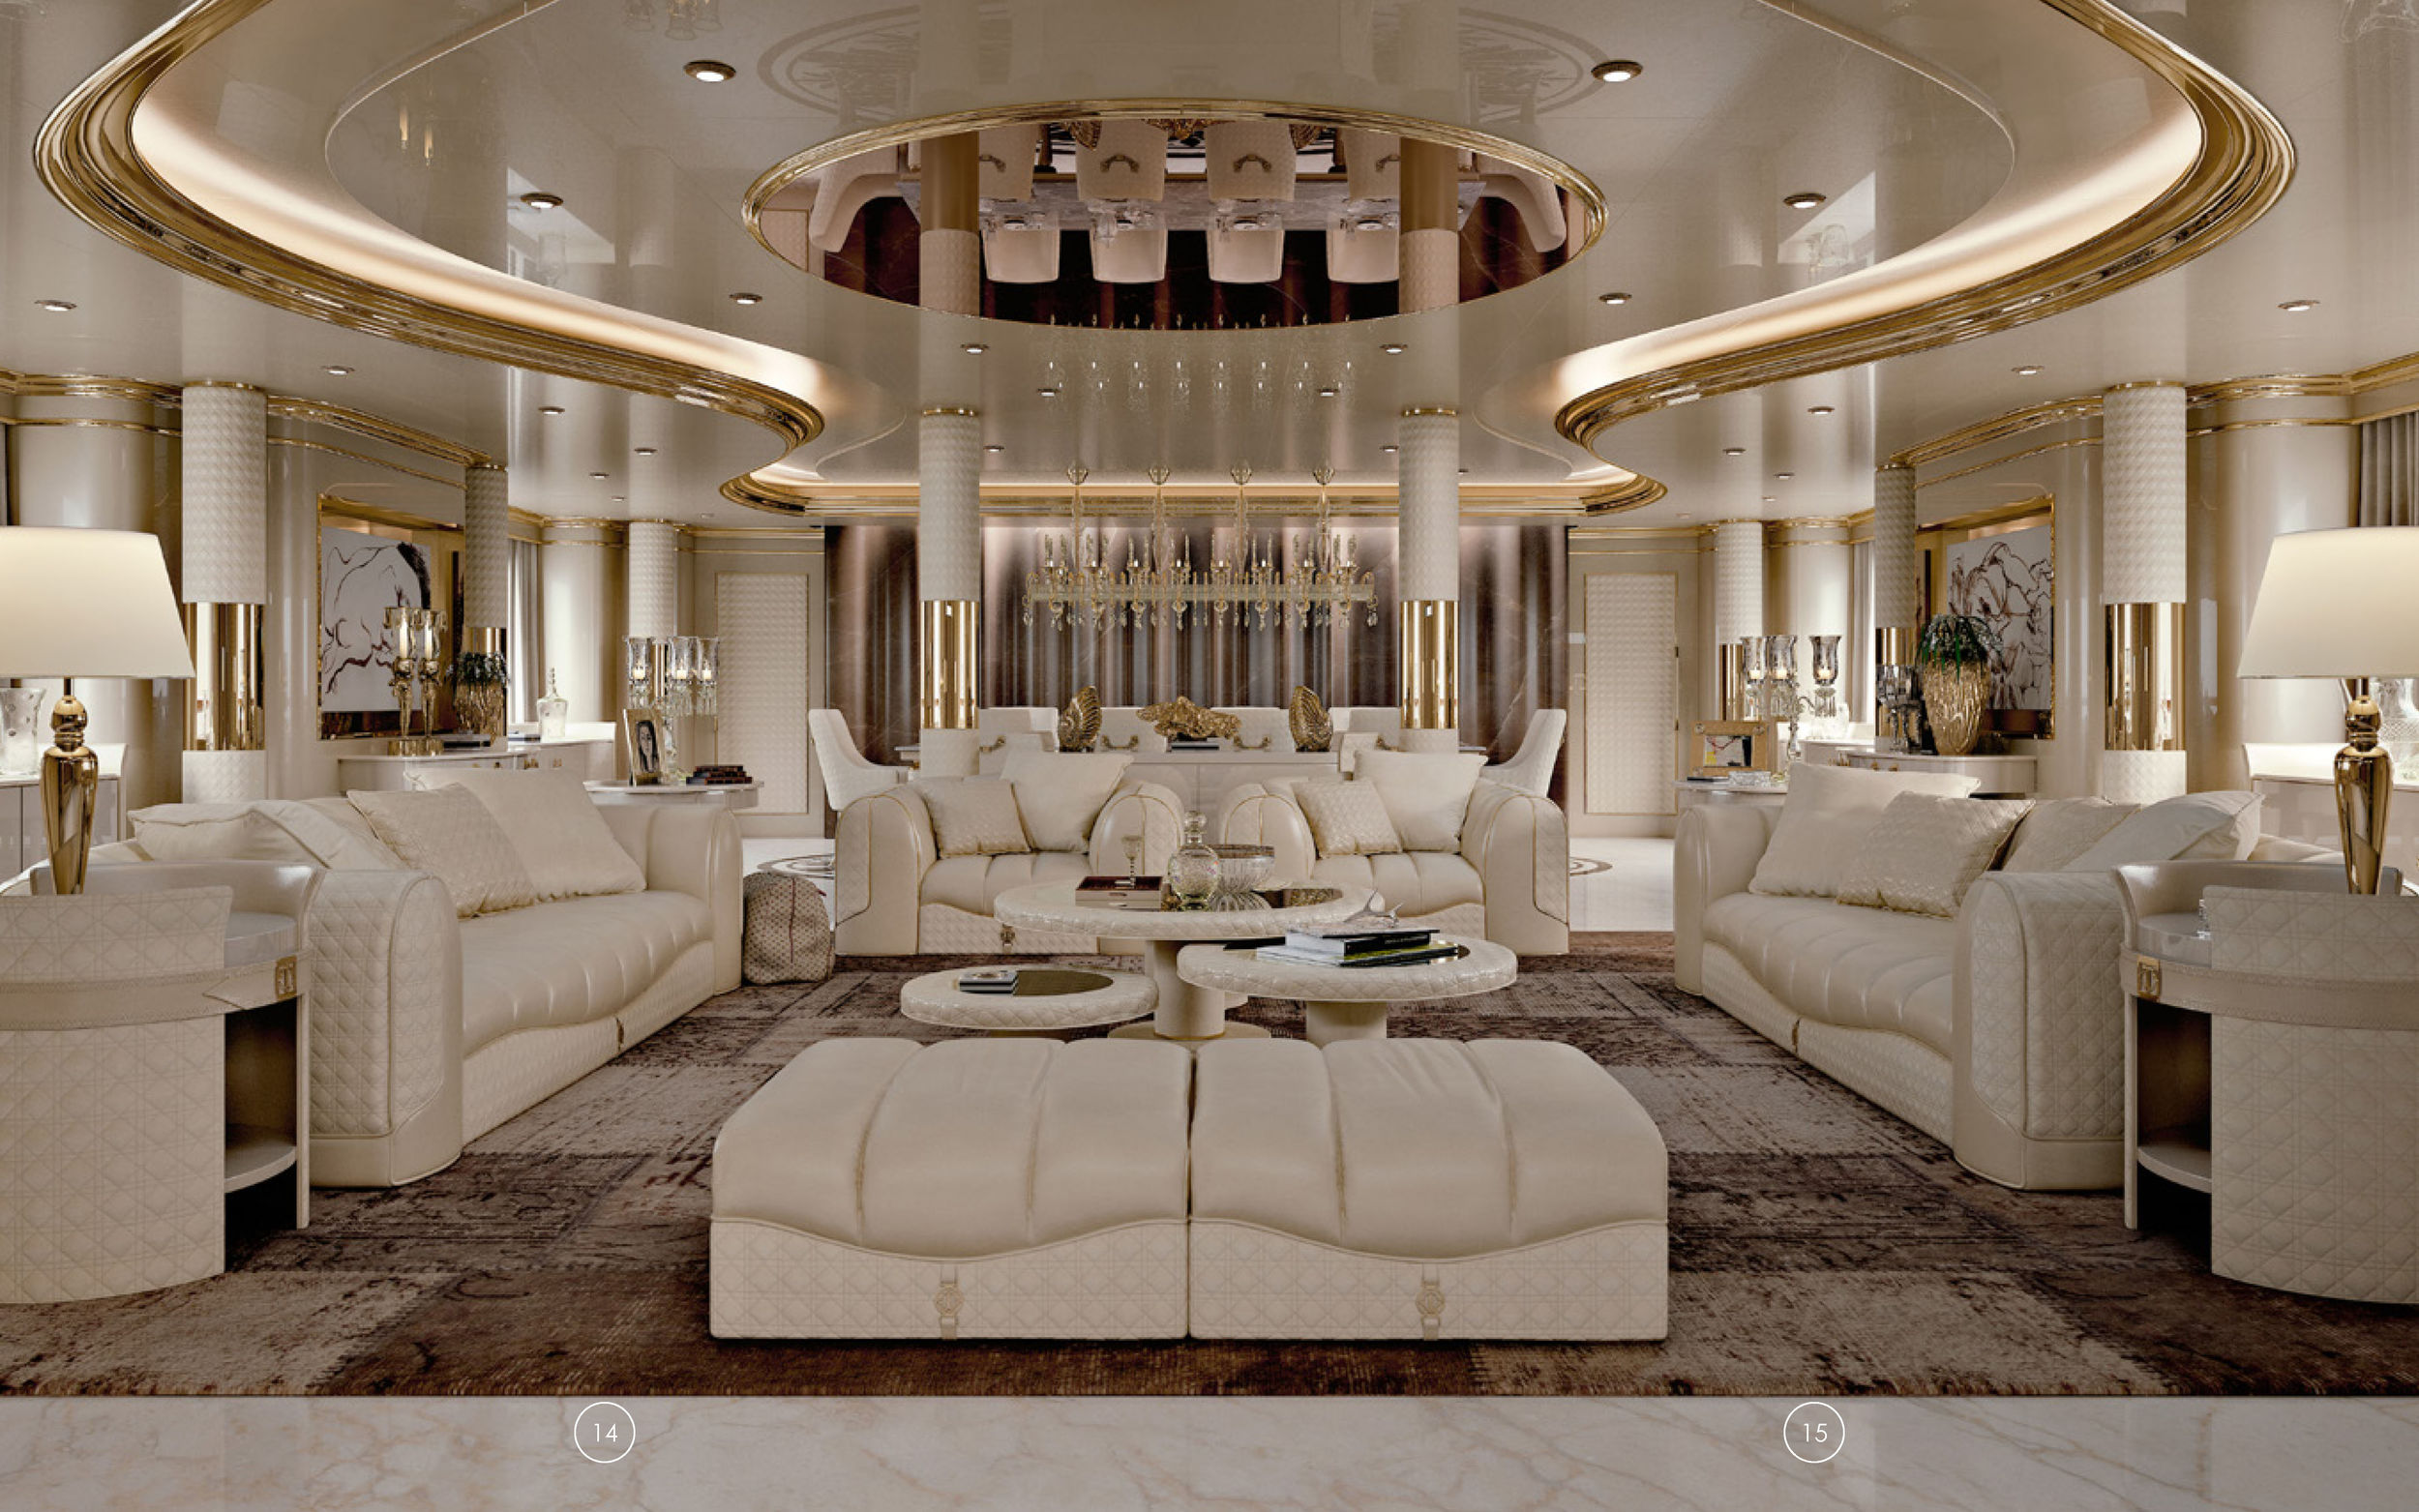 5.0 OCEAN DREAM 2014_megayacht_Страница_09.jpg